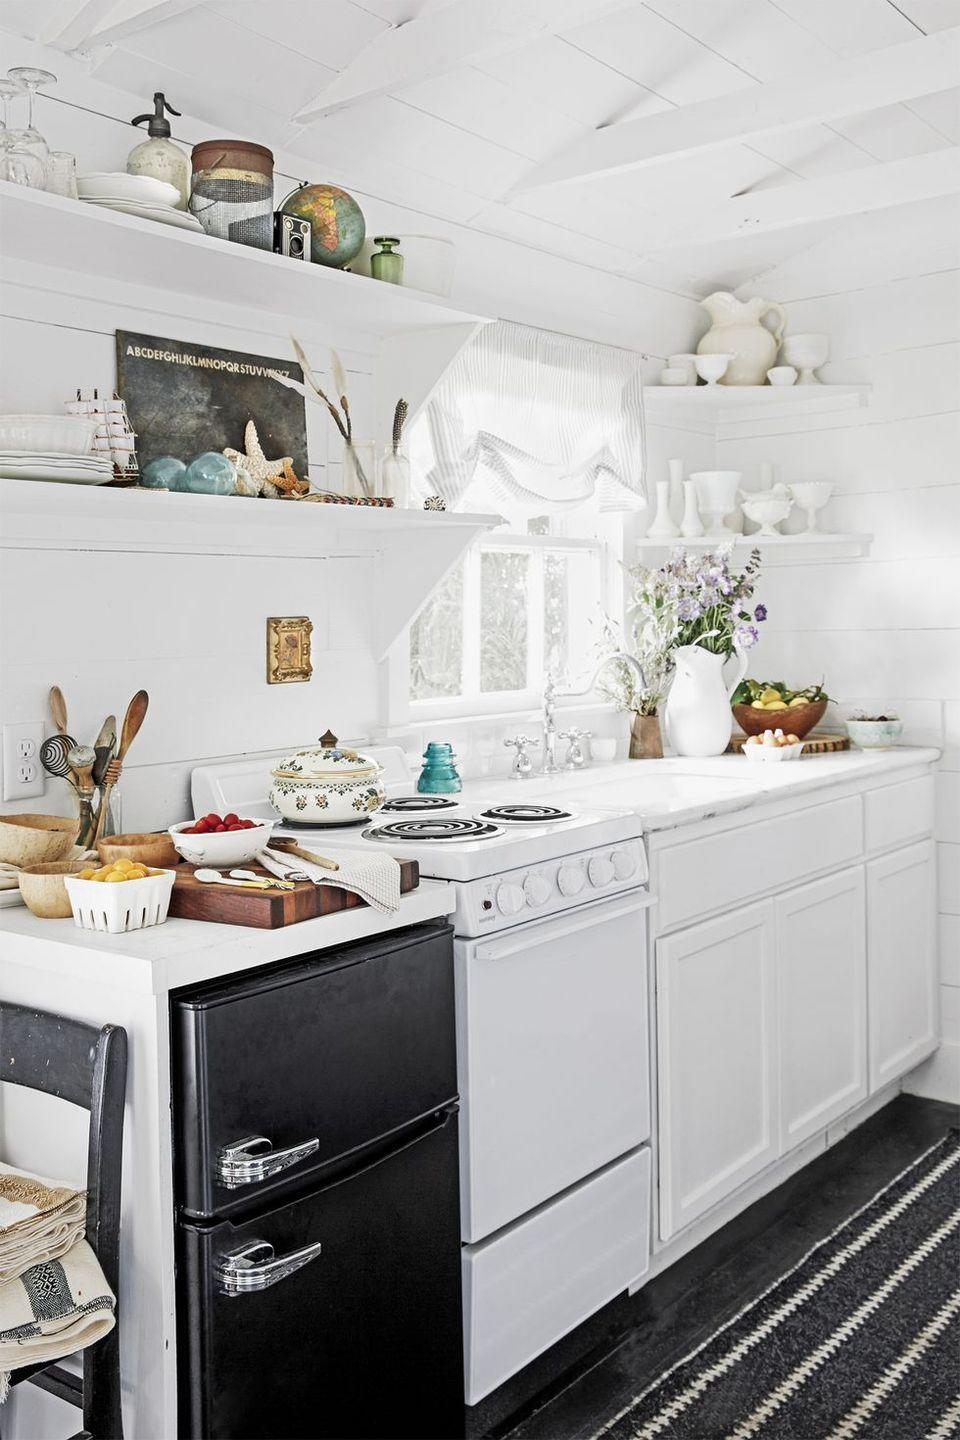 """<p>By sticking to a black-and-white color scheme, Paige makes her modestly sized kitchen appear much larger than it really is.</p><p><a class=""""link rapid-noclick-resp"""" href=""""https://www.amazon.com/Life-Changing-Magic-Tidying-Decluttering-Organizing/dp/1607747308?tag=syn-yahoo-20&ascsubtag=%5Bartid%7C10050.g.1887%5Bsrc%7Cyahoo-us"""" rel=""""nofollow noopener"""" target=""""_blank"""" data-ylk=""""slk:SHOP TIDYING BOOKS"""">SHOP TIDYING BOOKS</a></p>"""